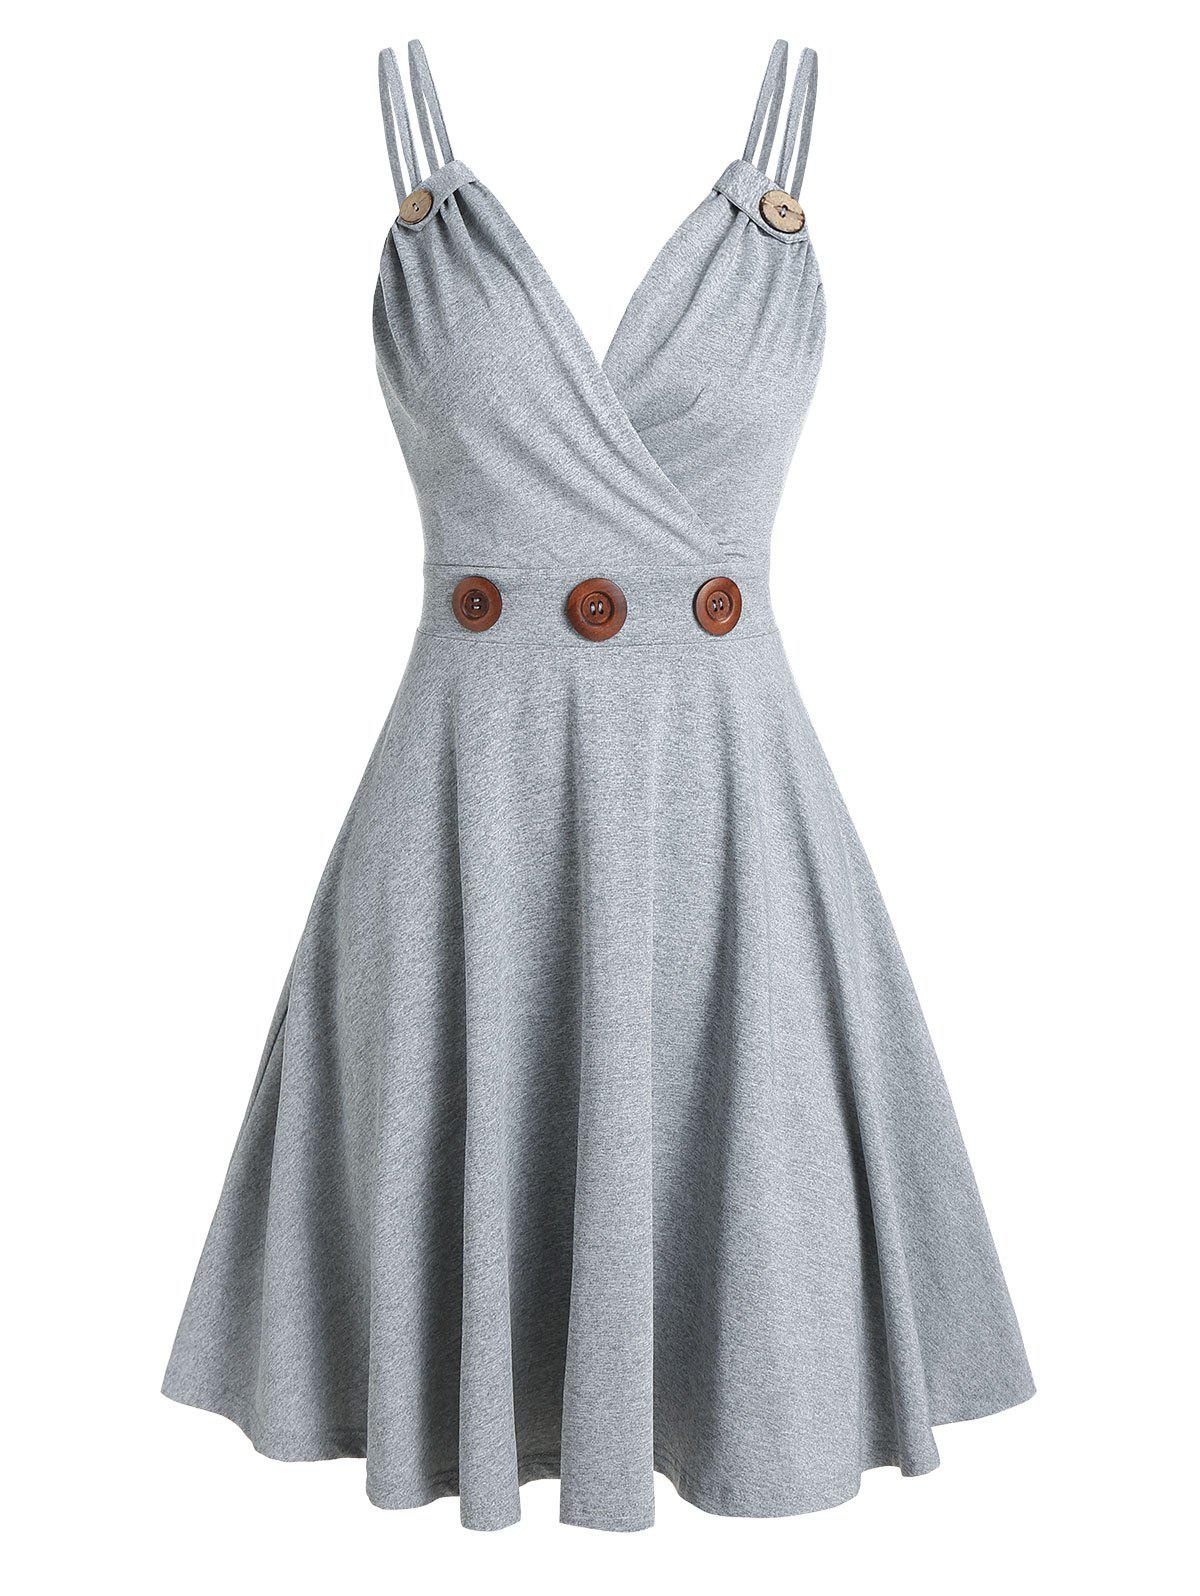 Strappy Mock Button Flare Dress - LIGHT GRAY L